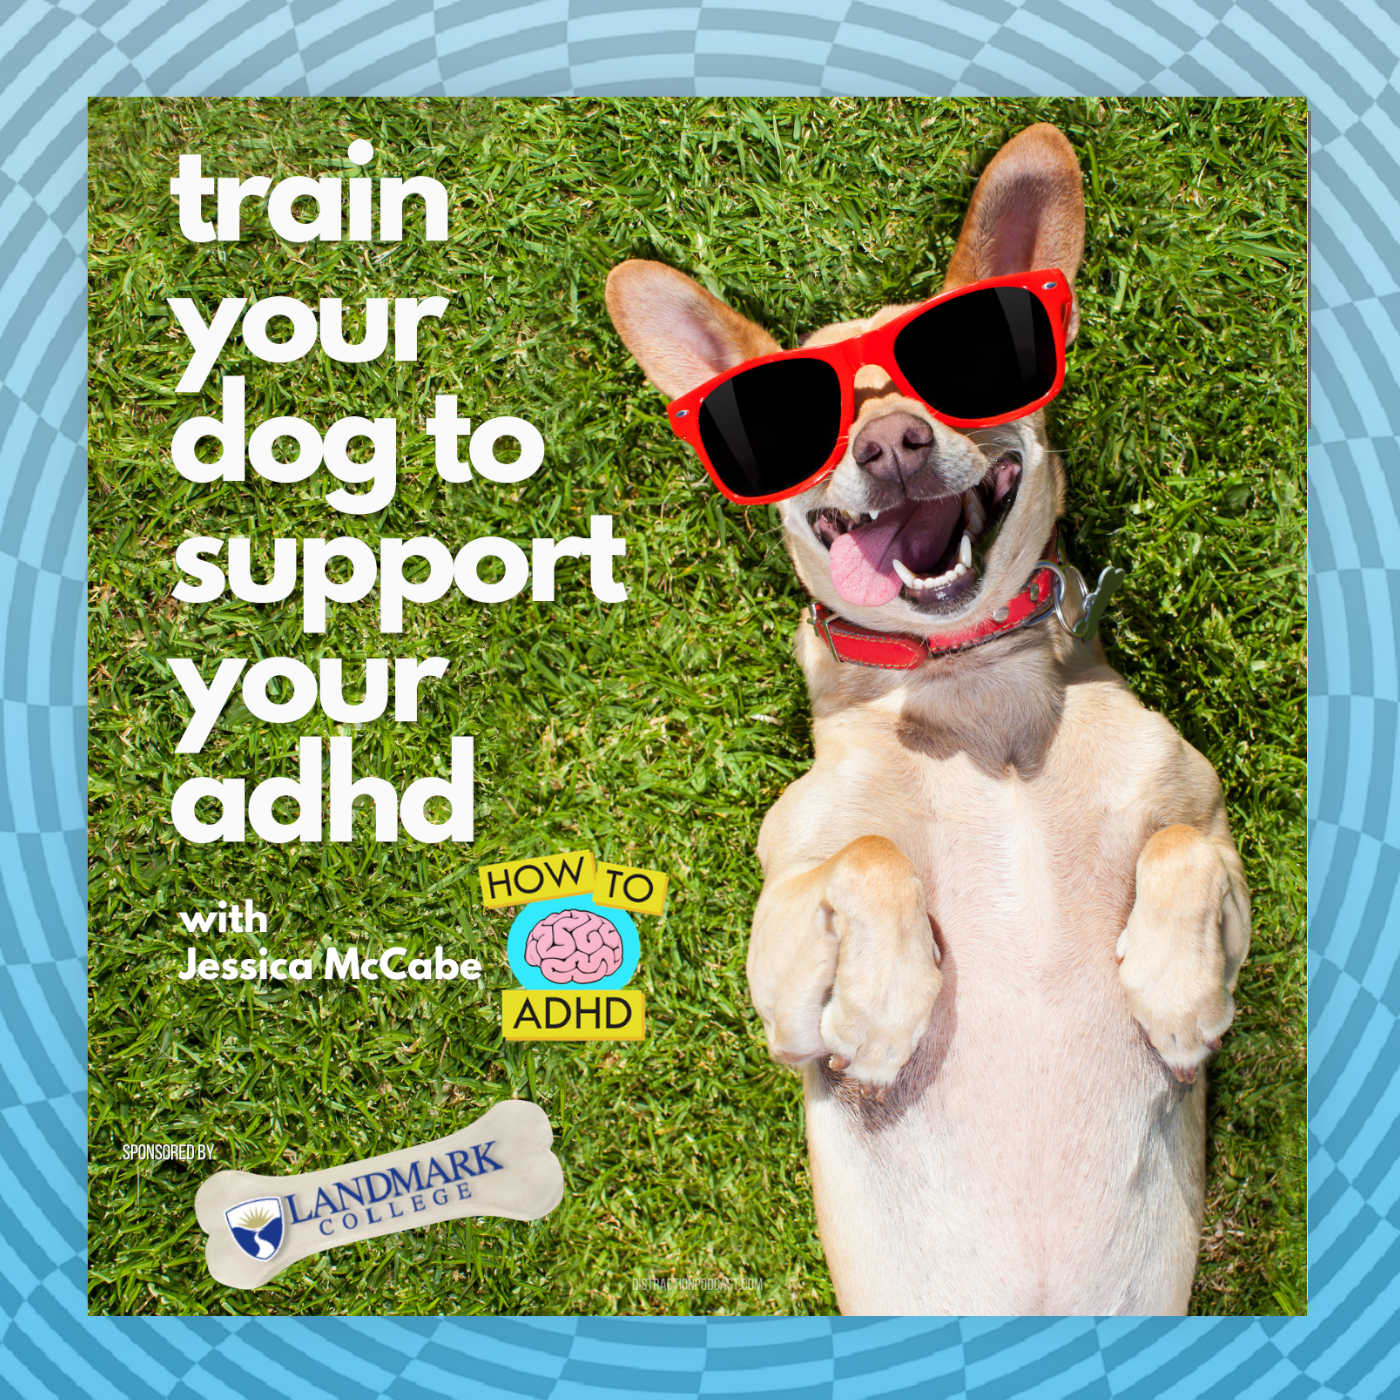 Train Your Dog to Support Your ADHD with Jessica McCabe and Landmark College